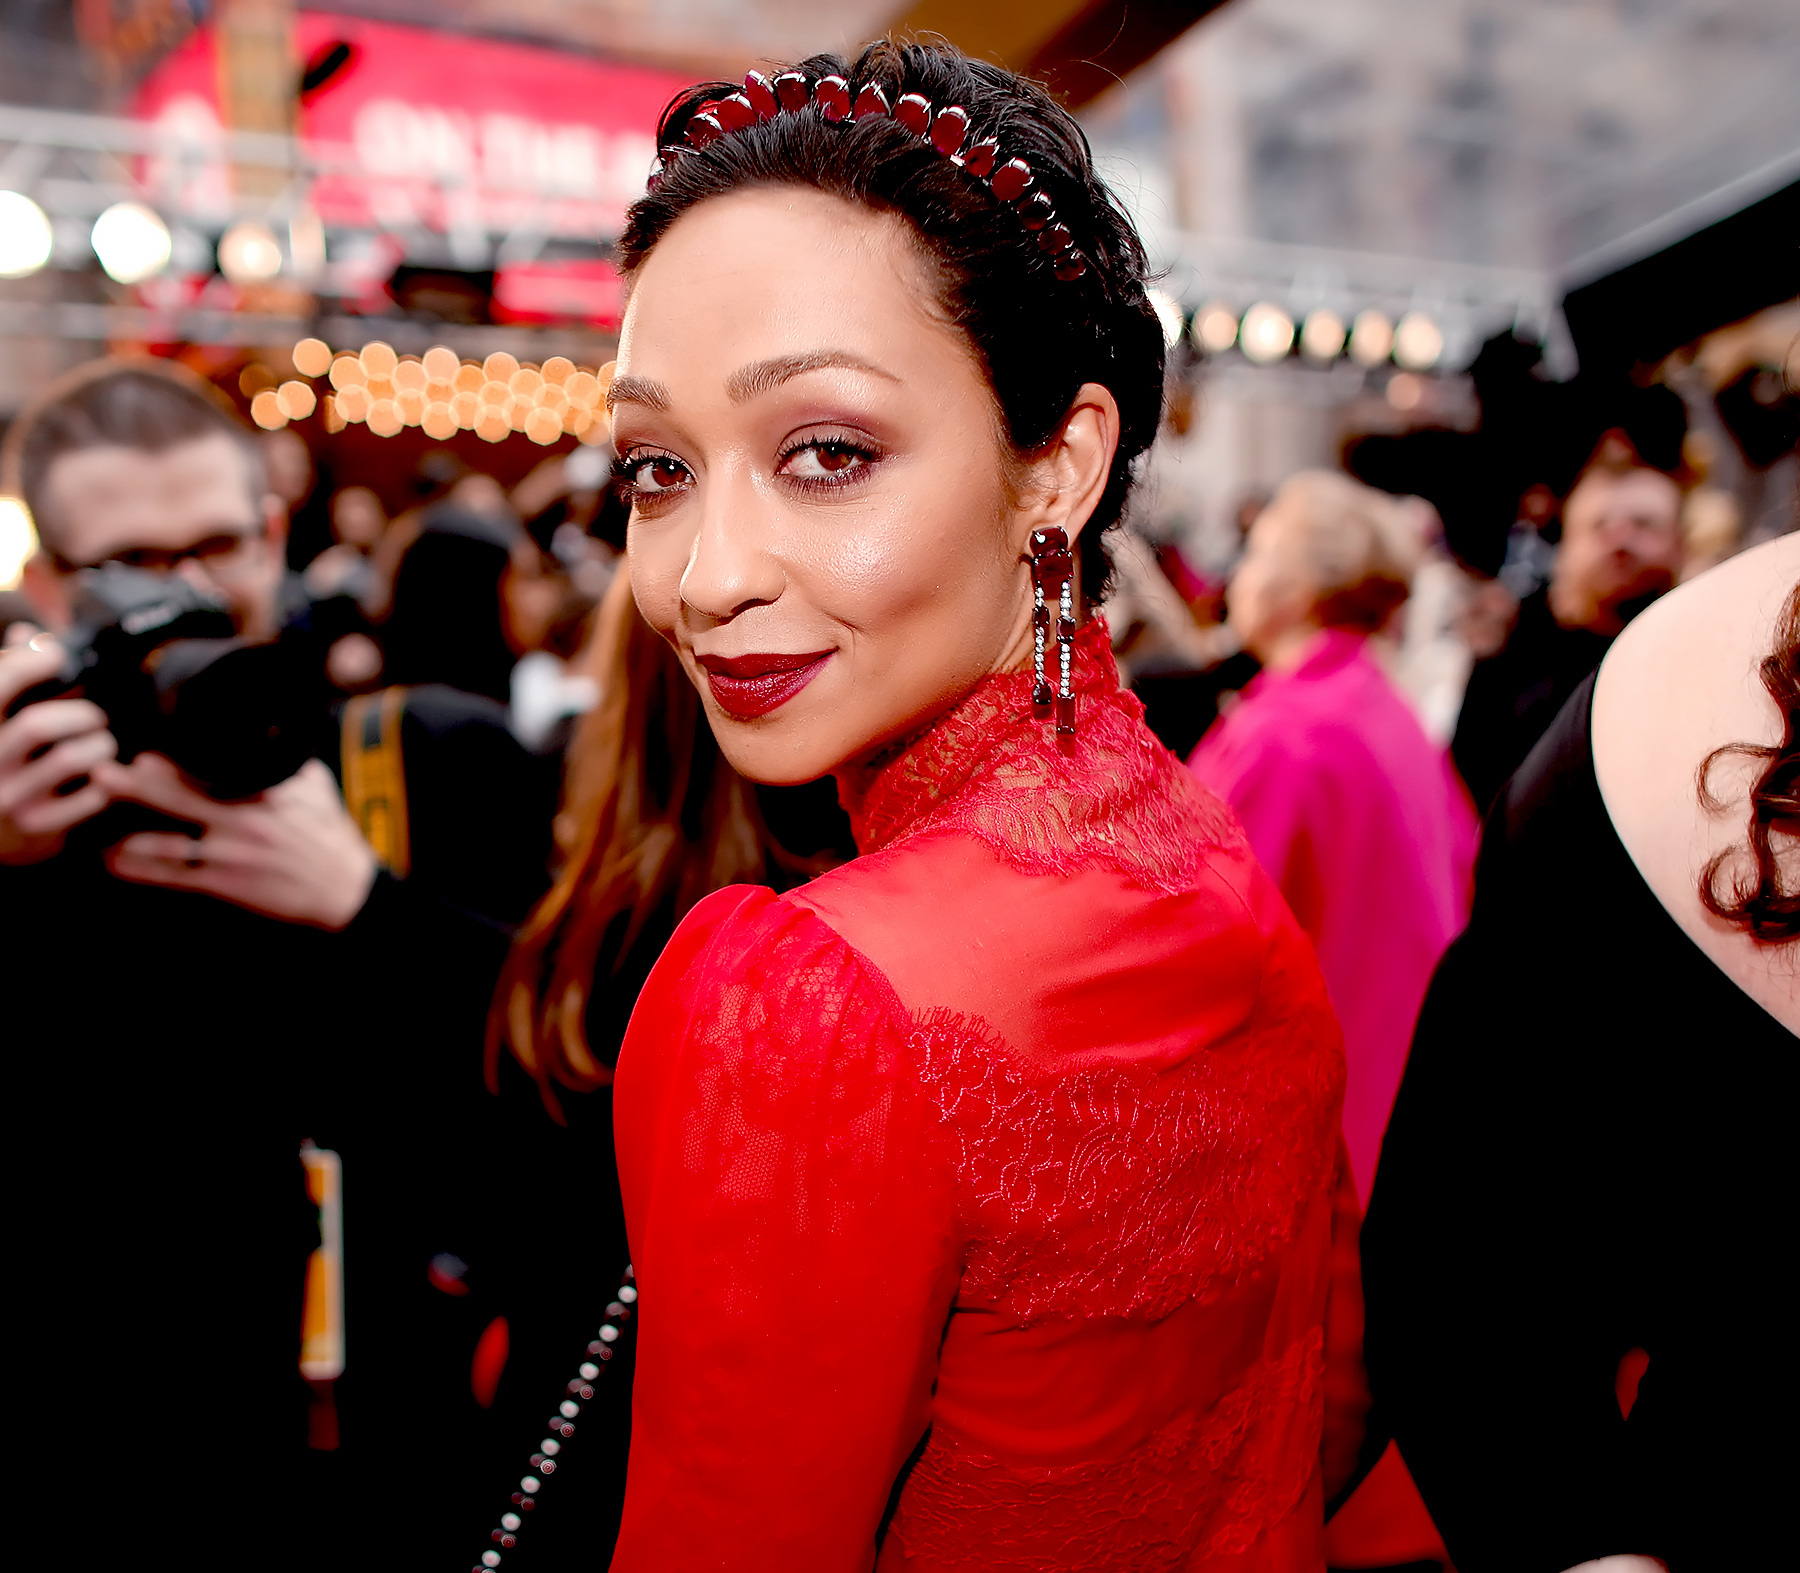 Ruth Negga attends the 89th Annual Academy Awards at Hollywood & Highland Center on February 26, 2017 in Hollywood, California.